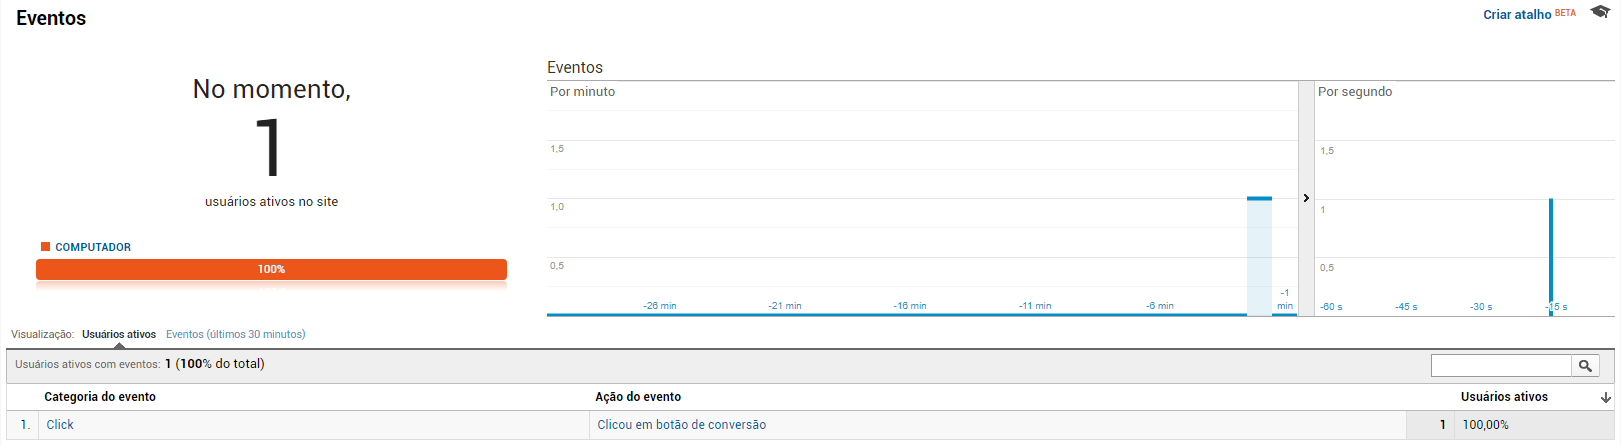 eventos em tempo real no google analytics